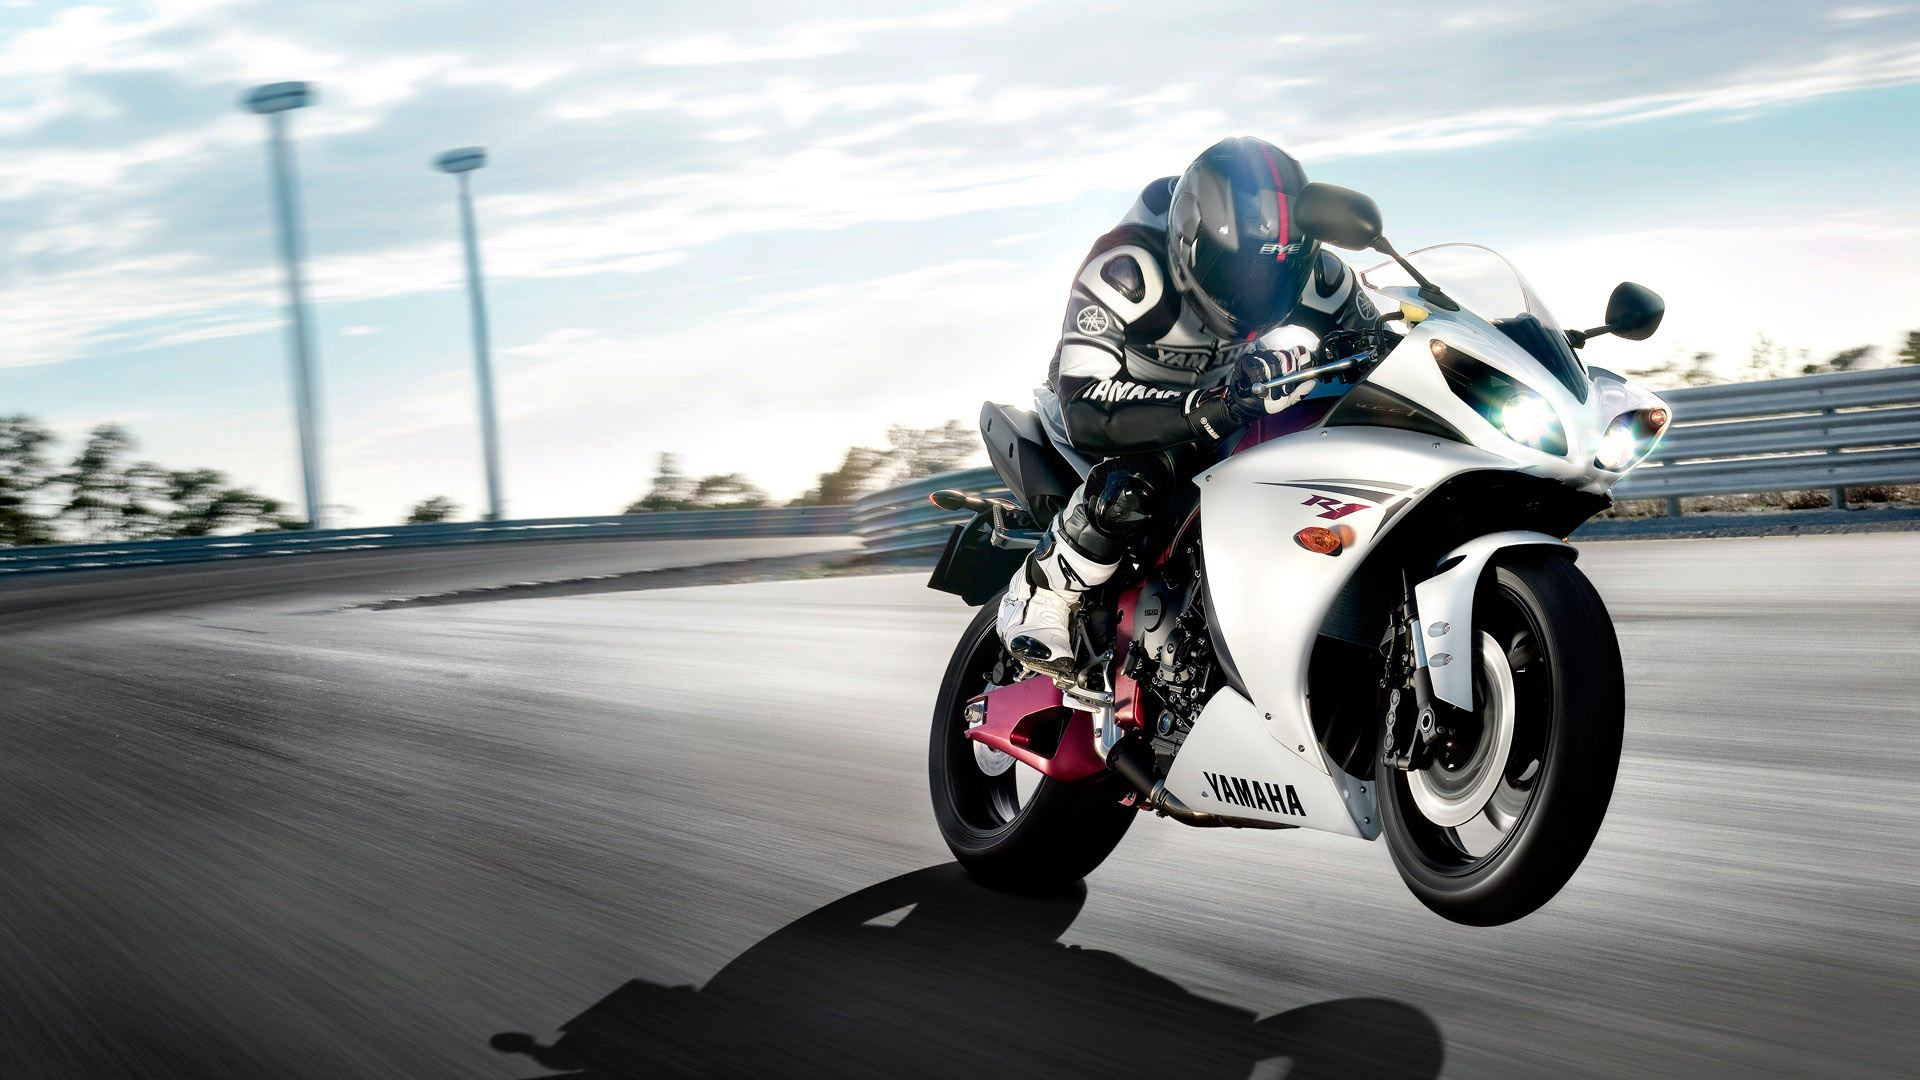 Yamaha motorcycle wallpapers and high resolution pictures